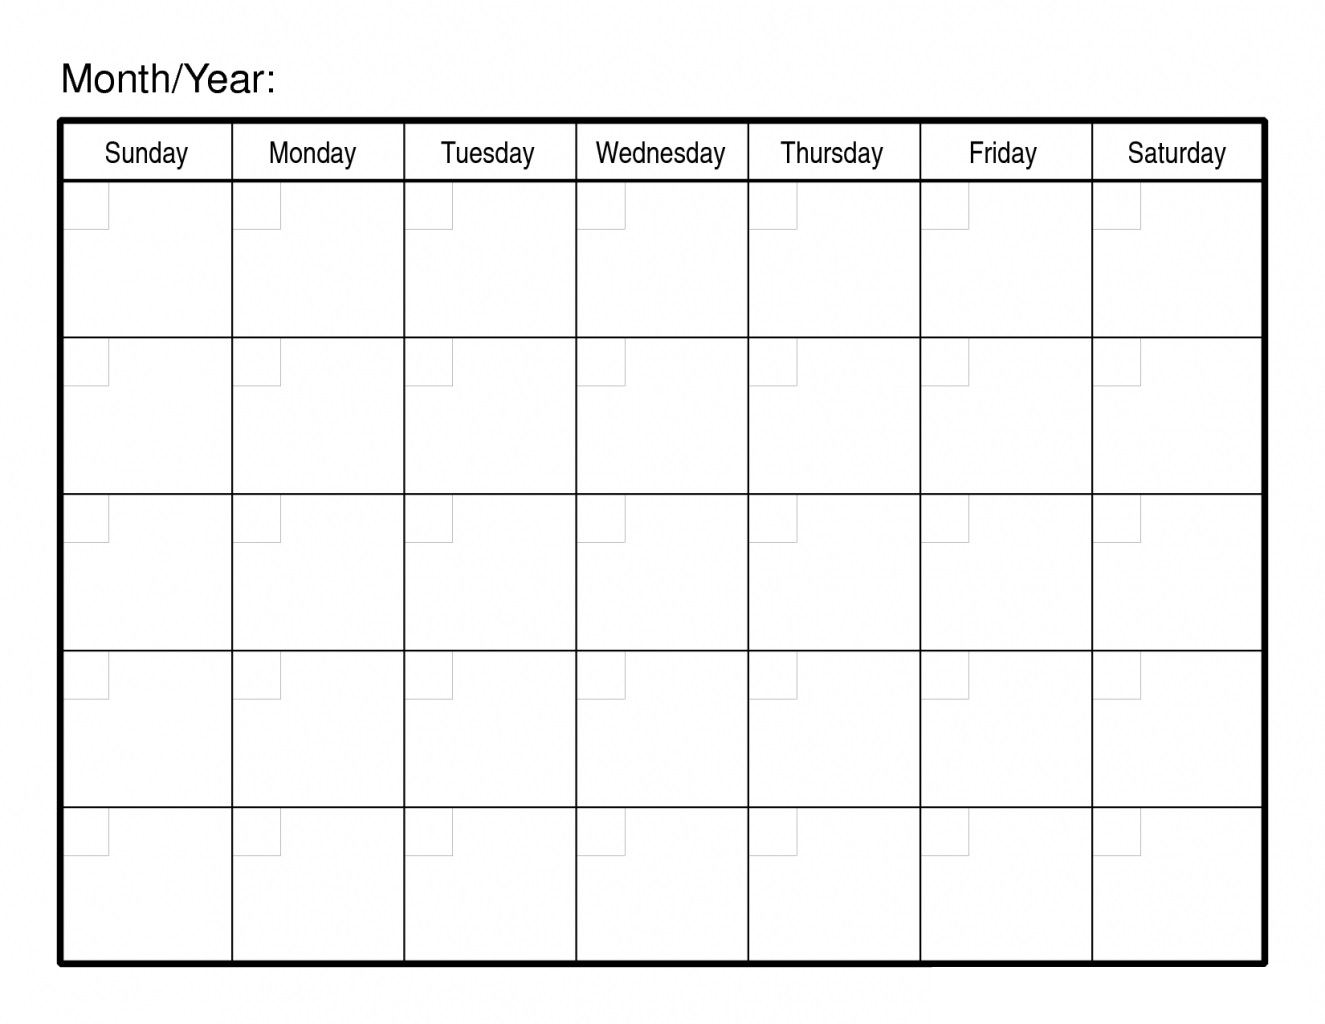 Free Printable 30 Day Calendars - Calendar Inspiration Design with regard to Free Priintable Calendar Day By Day